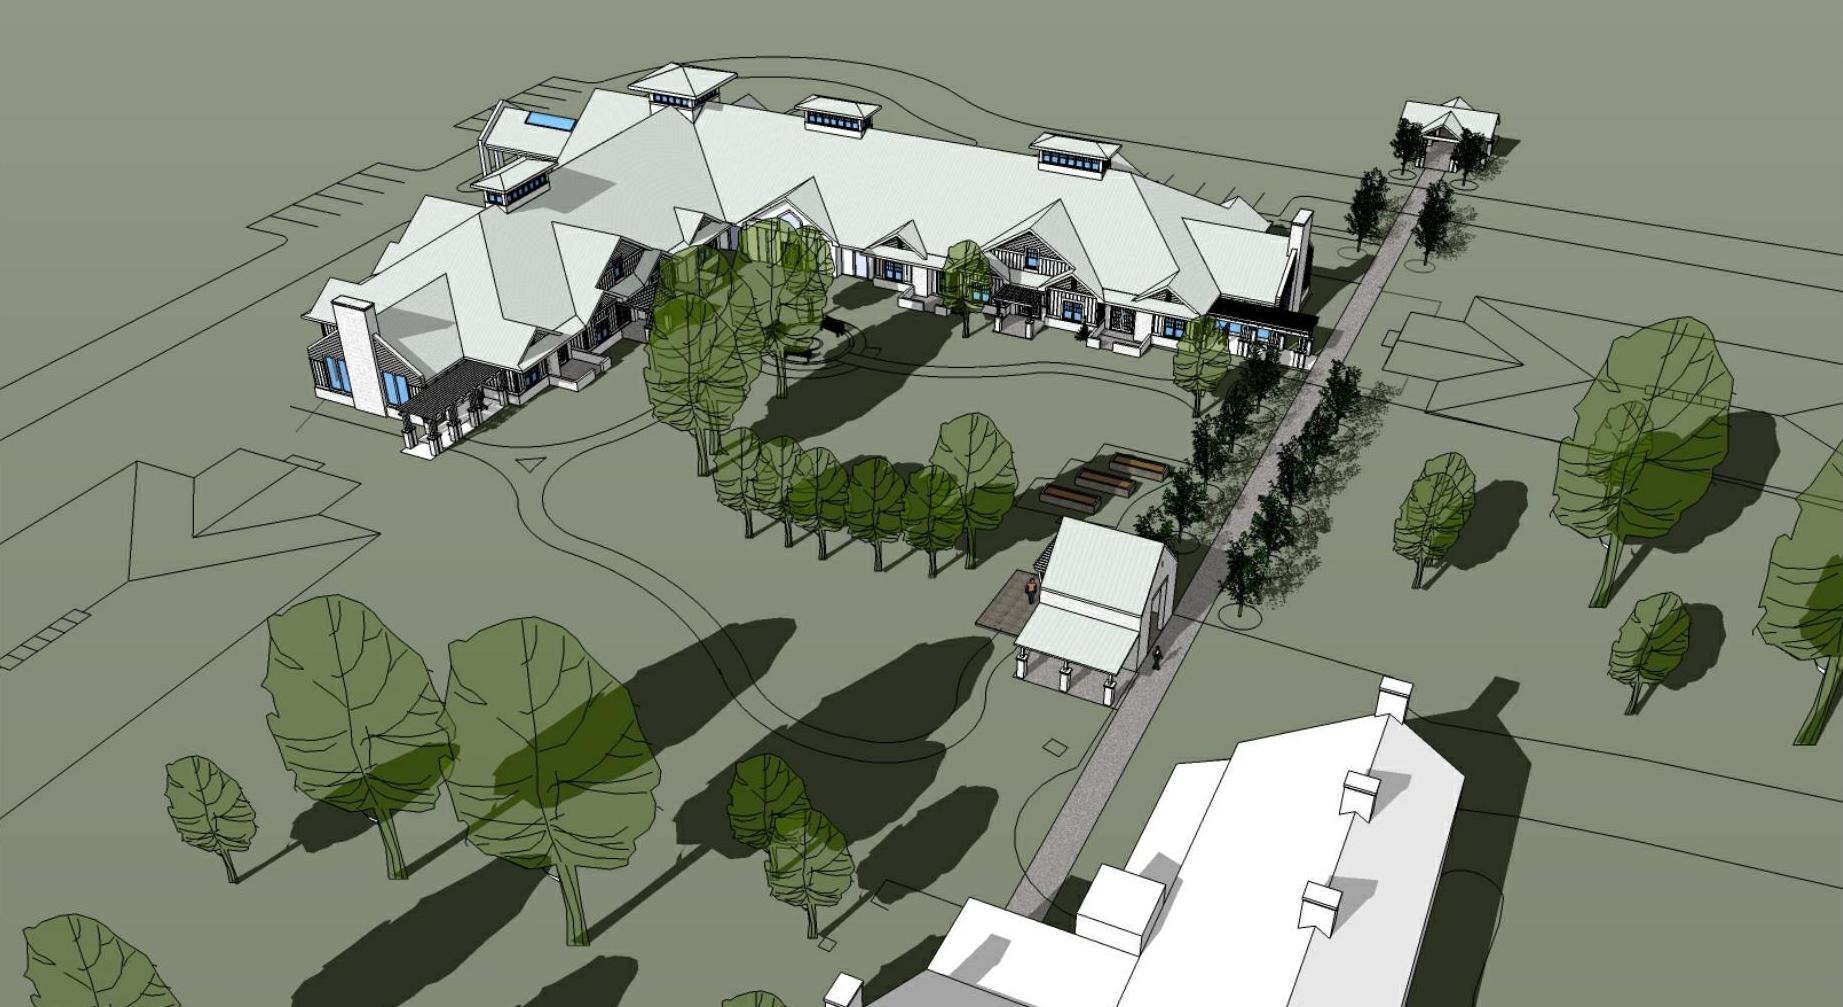 LEWIS MEMORIAL - Assisted Living - Proposed